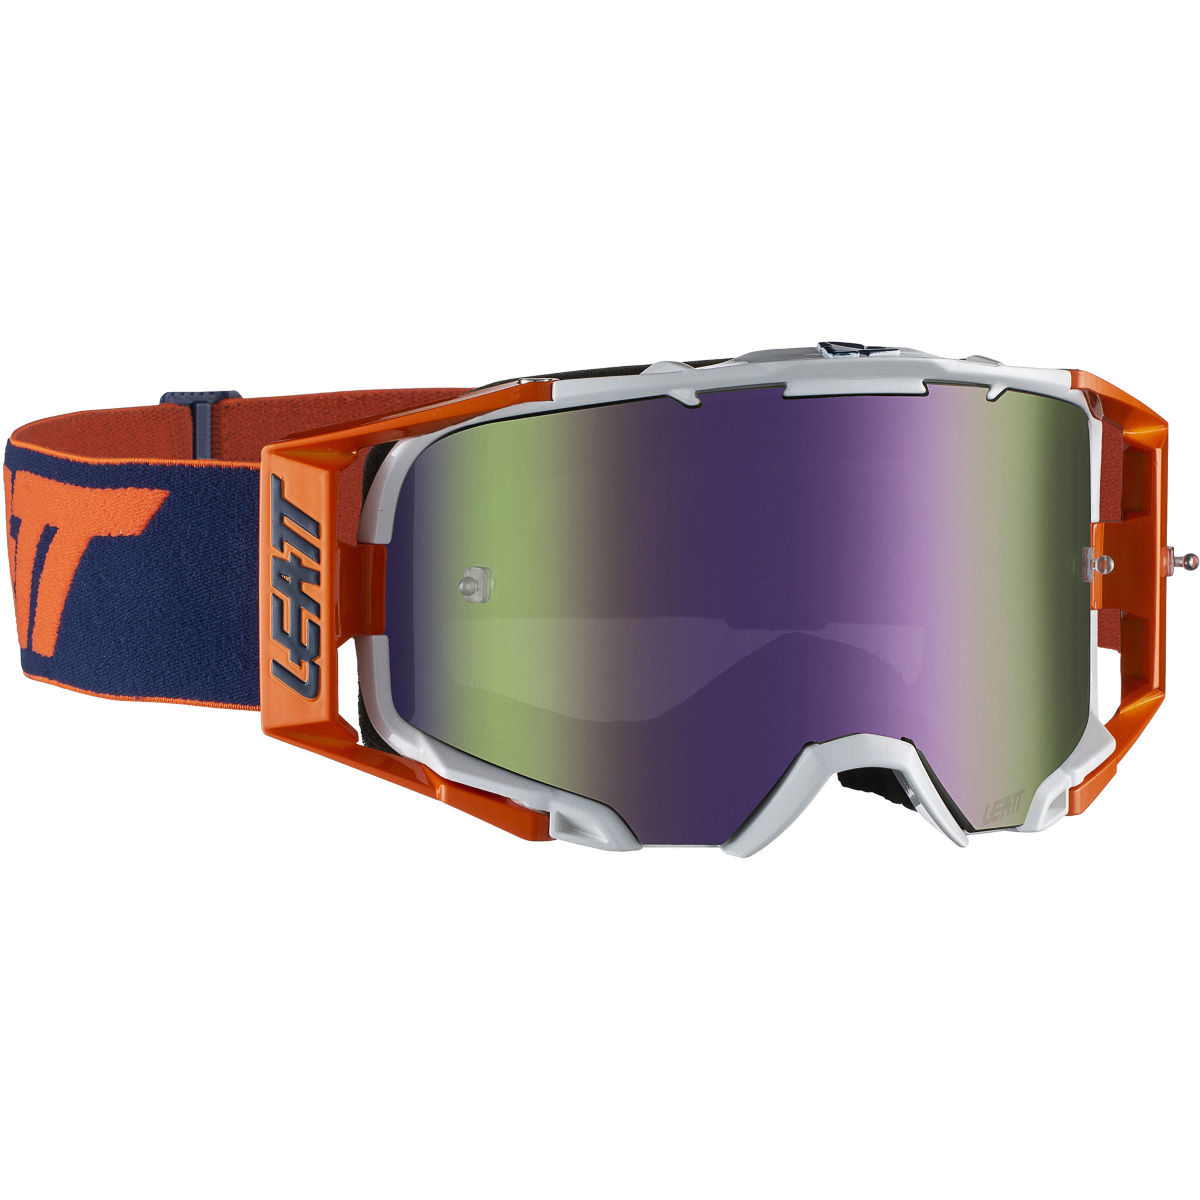 Leatt Velocity 6.5 Iriz - One Size Brown/brown  Cycling Goggles